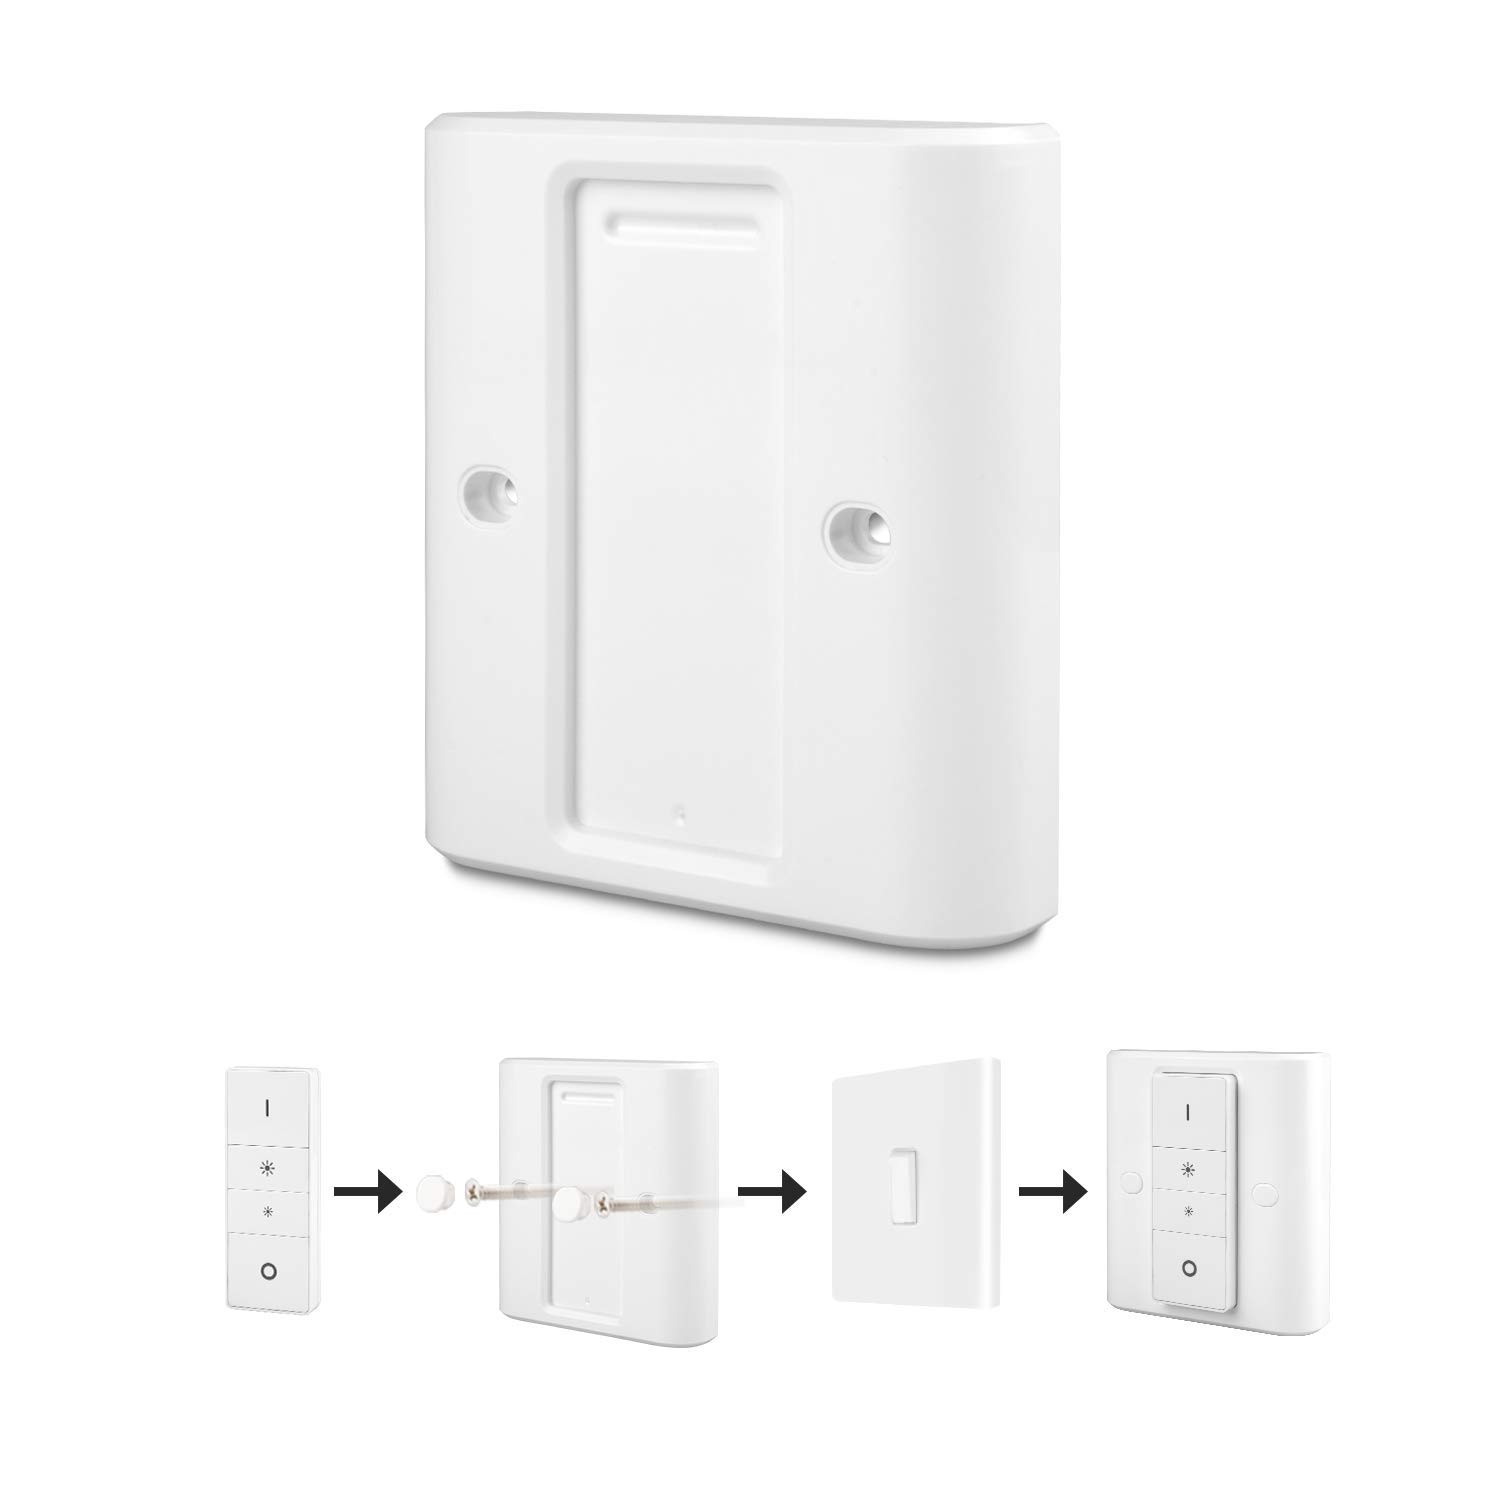 Light Switch Cover for Philips Hue Smart Wireless Dimmer Switch, Completely Covers Existing Light Switch and Easy to Install, Suitable for UK Standard